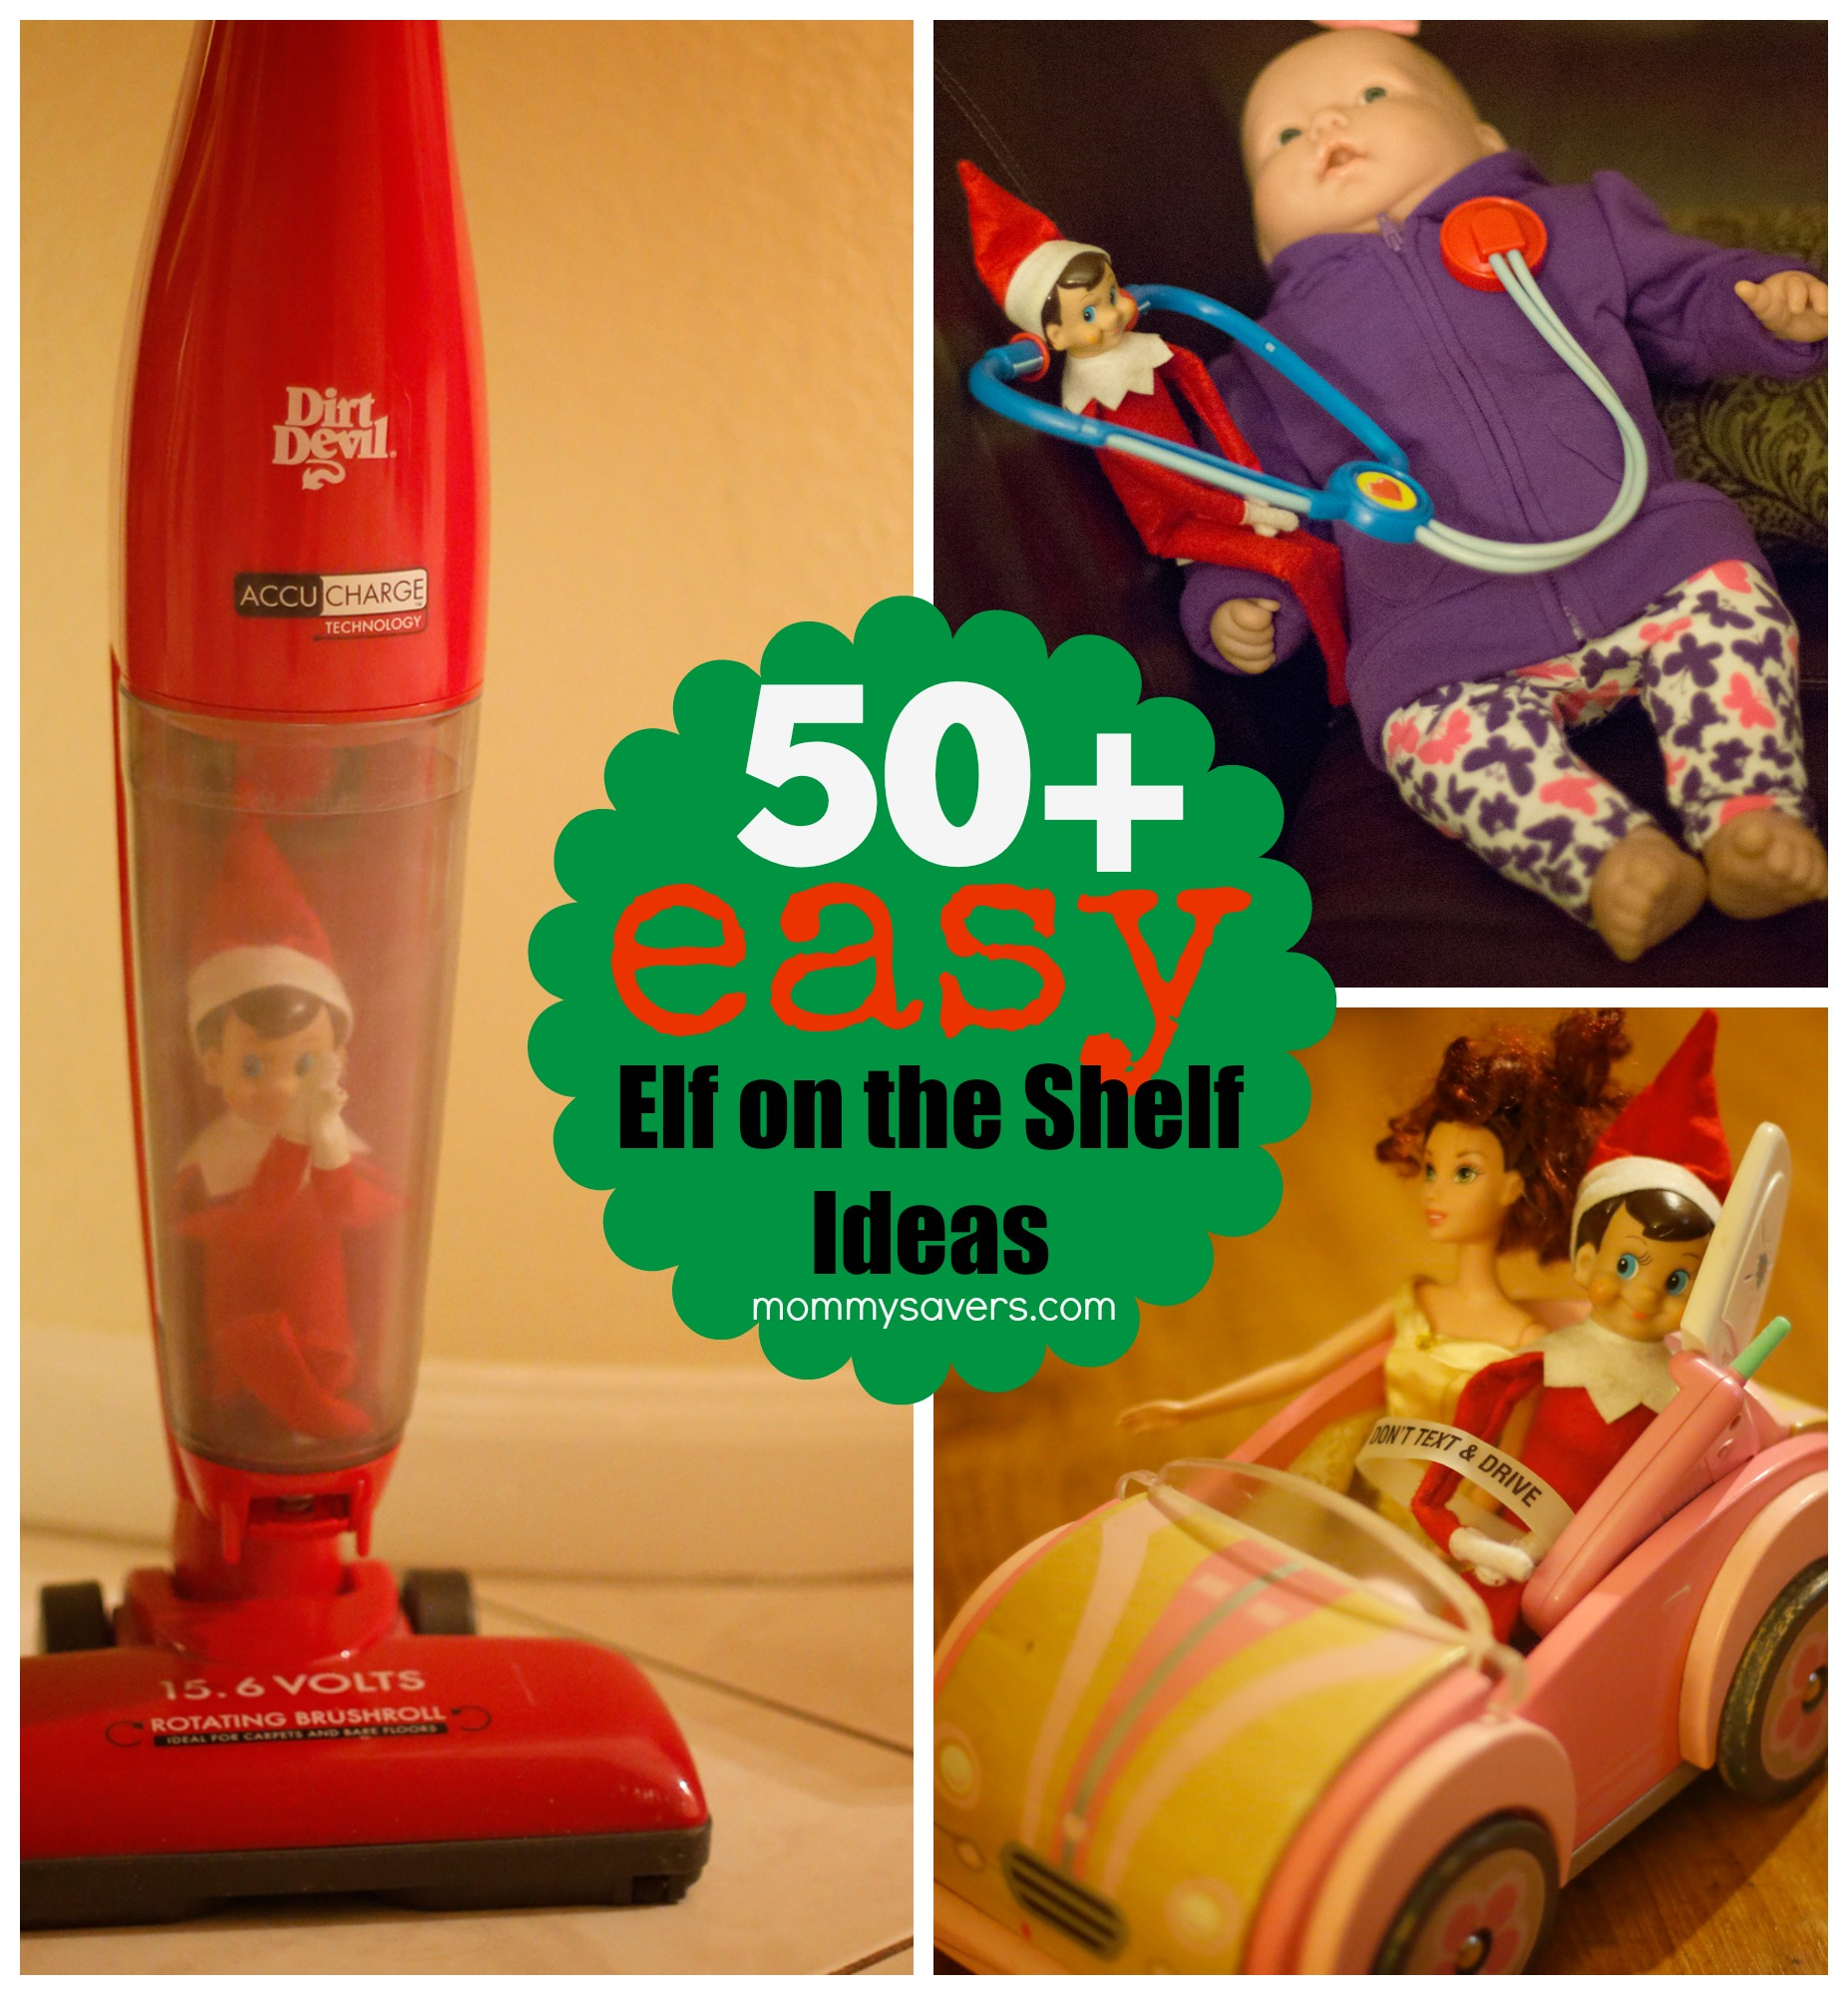 Easy elf on the shelf ideas mommysavers stuck for holiday ideas view